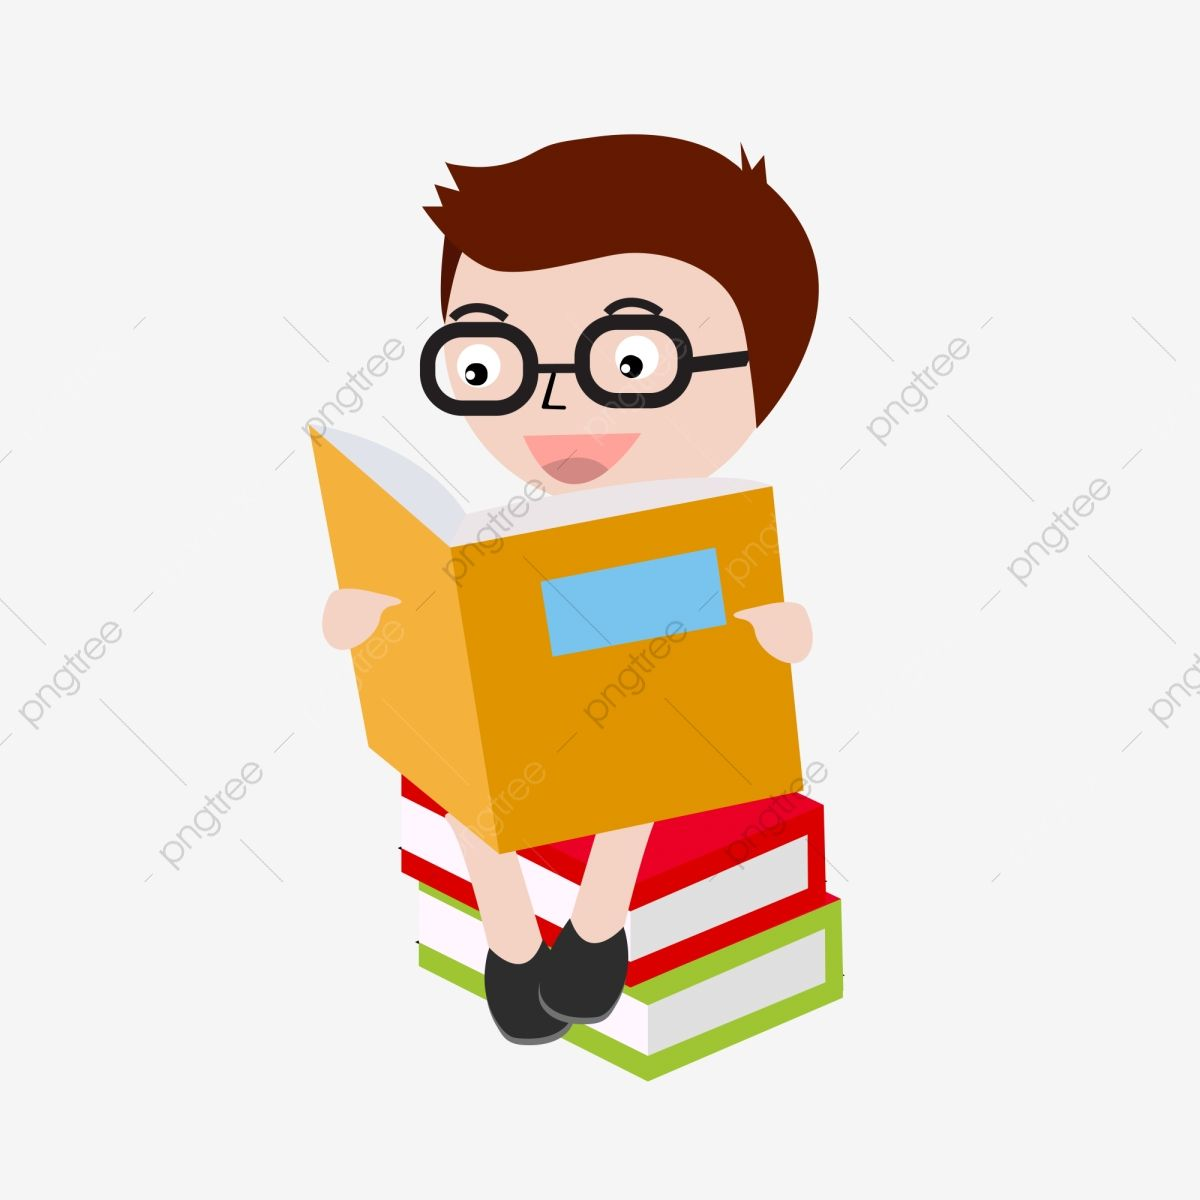 Child Reading Book Sitting Reading Clipart Reading Books Smile Png And Vector With Transparent Background For Free Download Kids Reading Books Books To Read Kids Reading